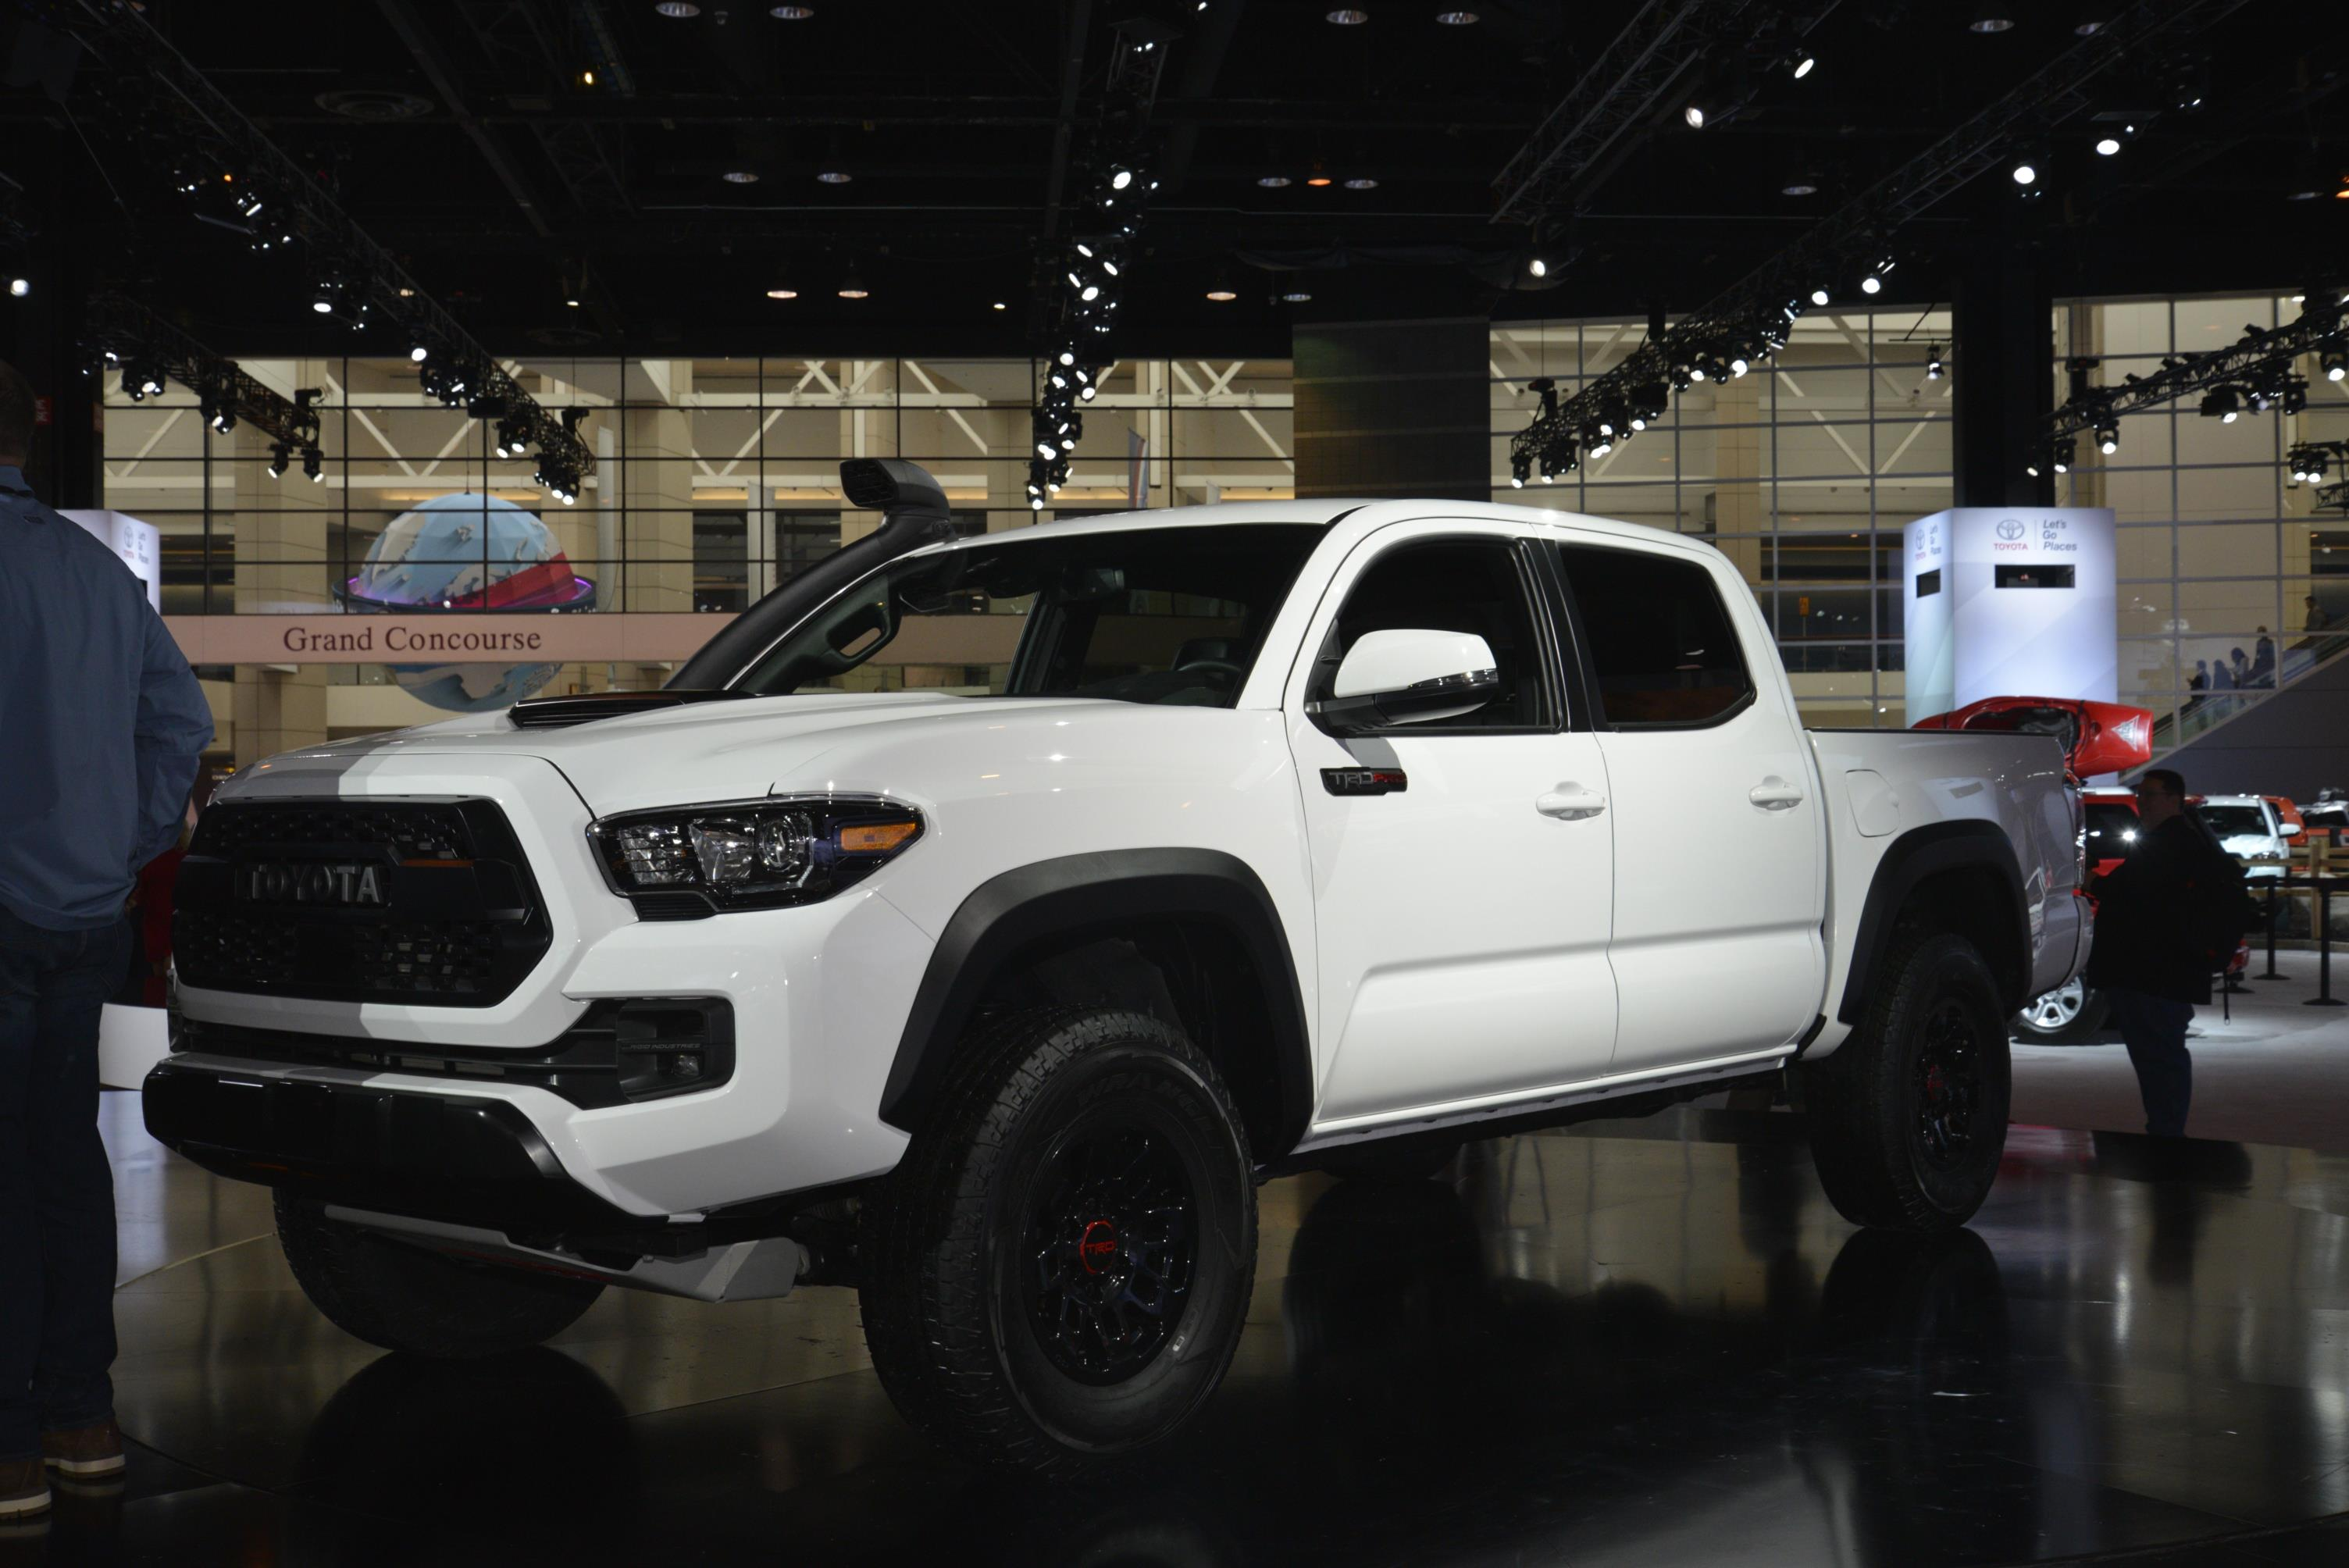 2019 TOYOTA TRD PROS TYPIFY ULTIMATE OFF-ROAD PERFORMANCE ...